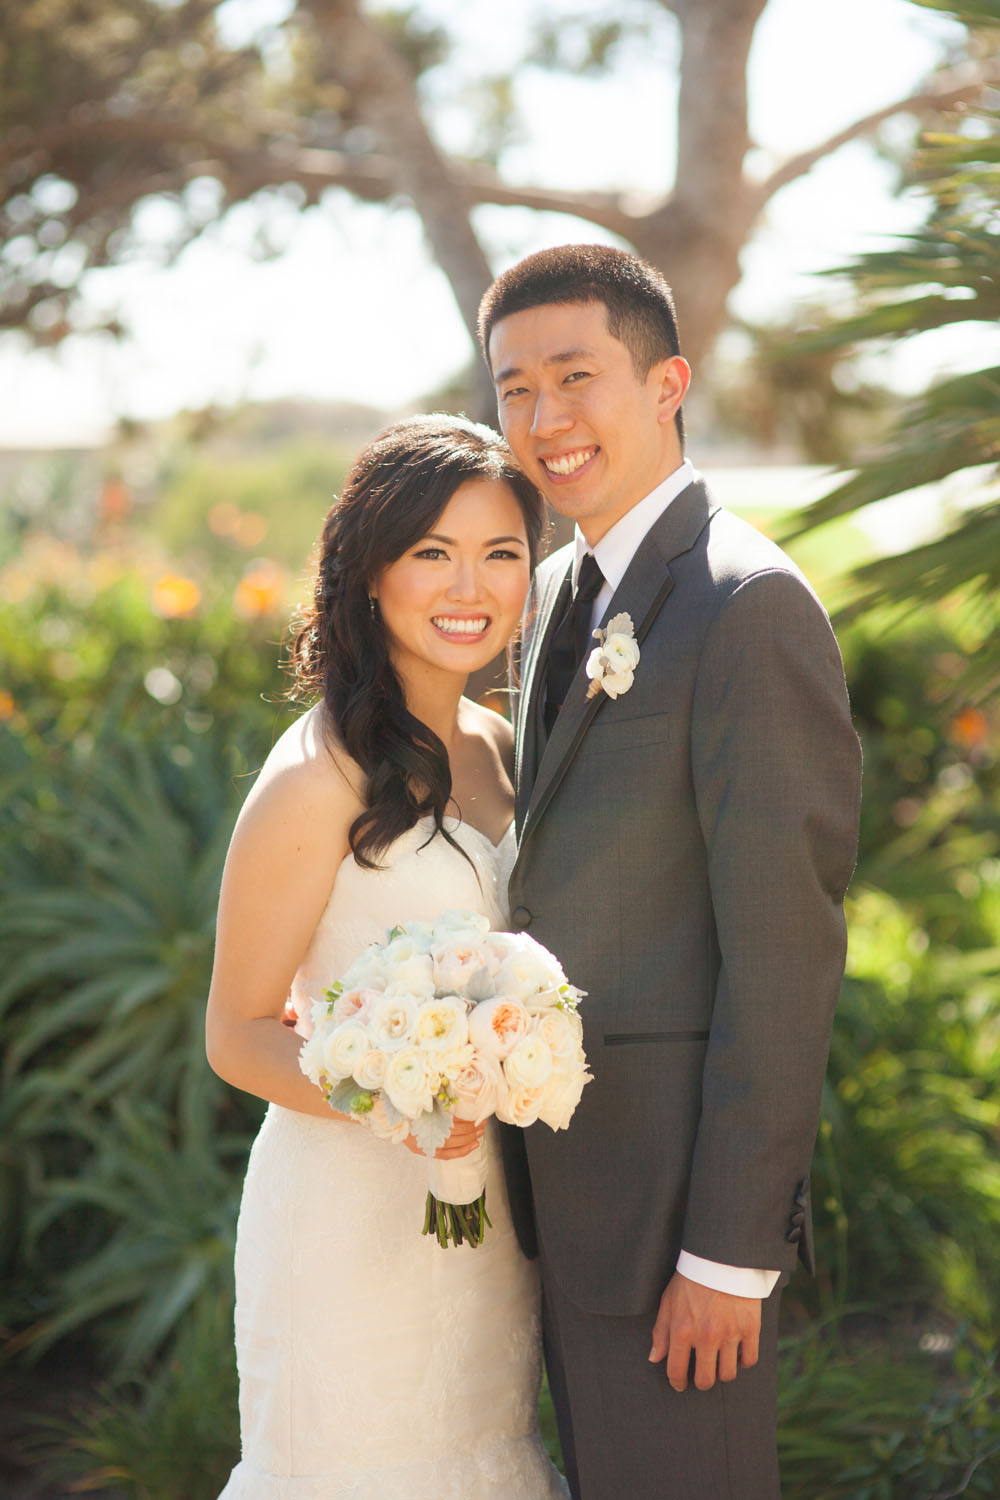 Teresa and Andy were married in Terranea, a beautiful luxury resort in Palos Verdes.